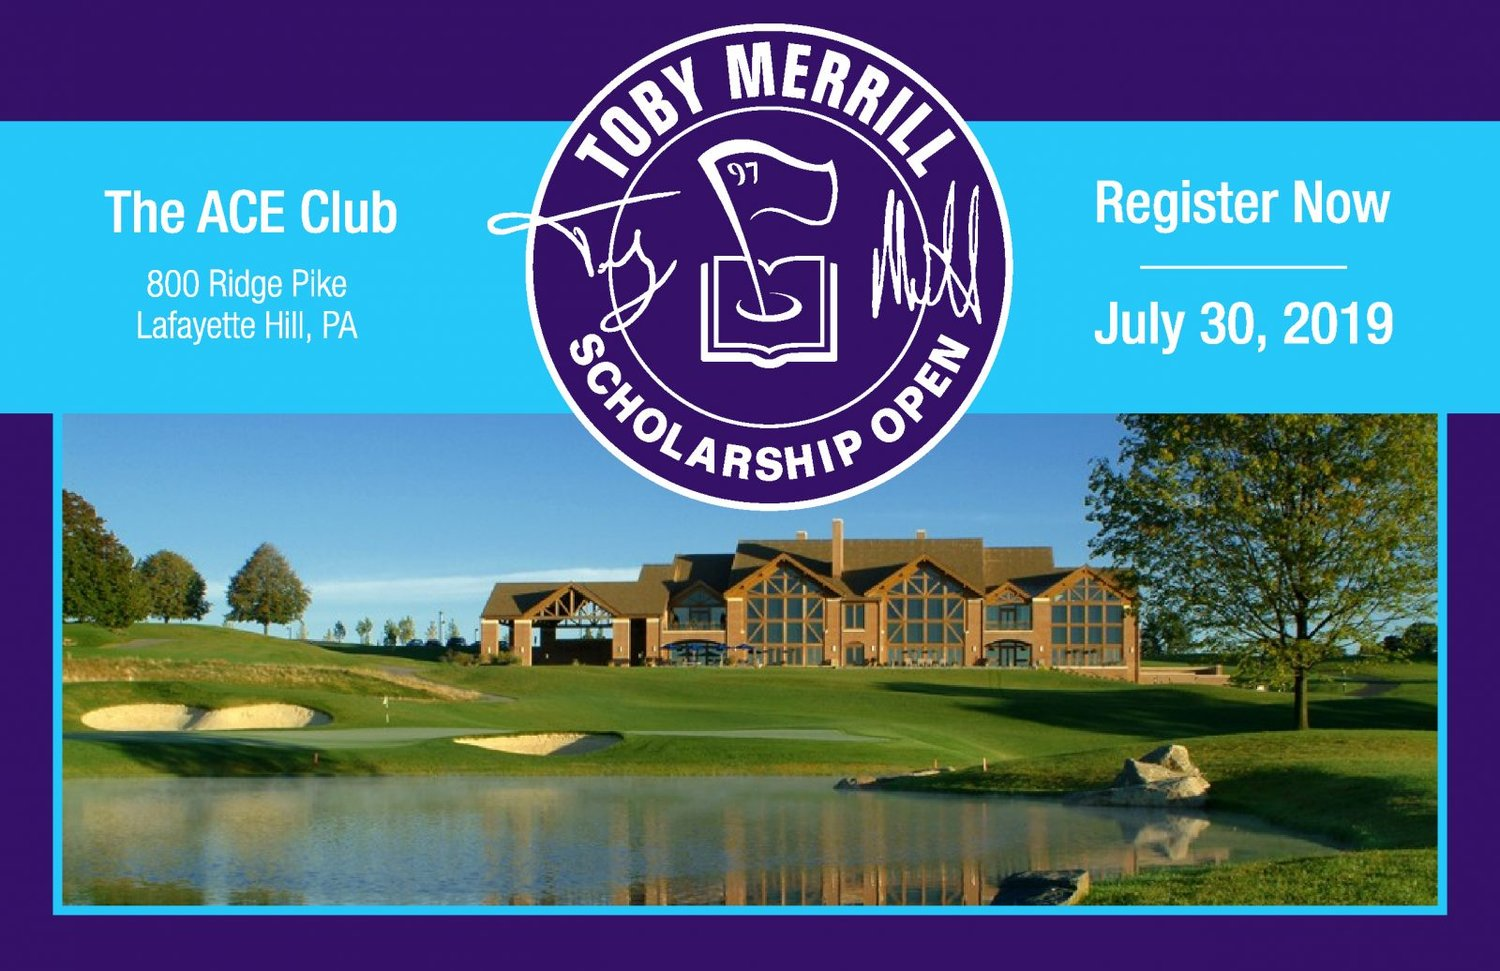 Join us for the second annual Toby Merrill Scholarship Open presented by CHUBB at The ACE Club in Lafayette Hill, Pennsylvania. -